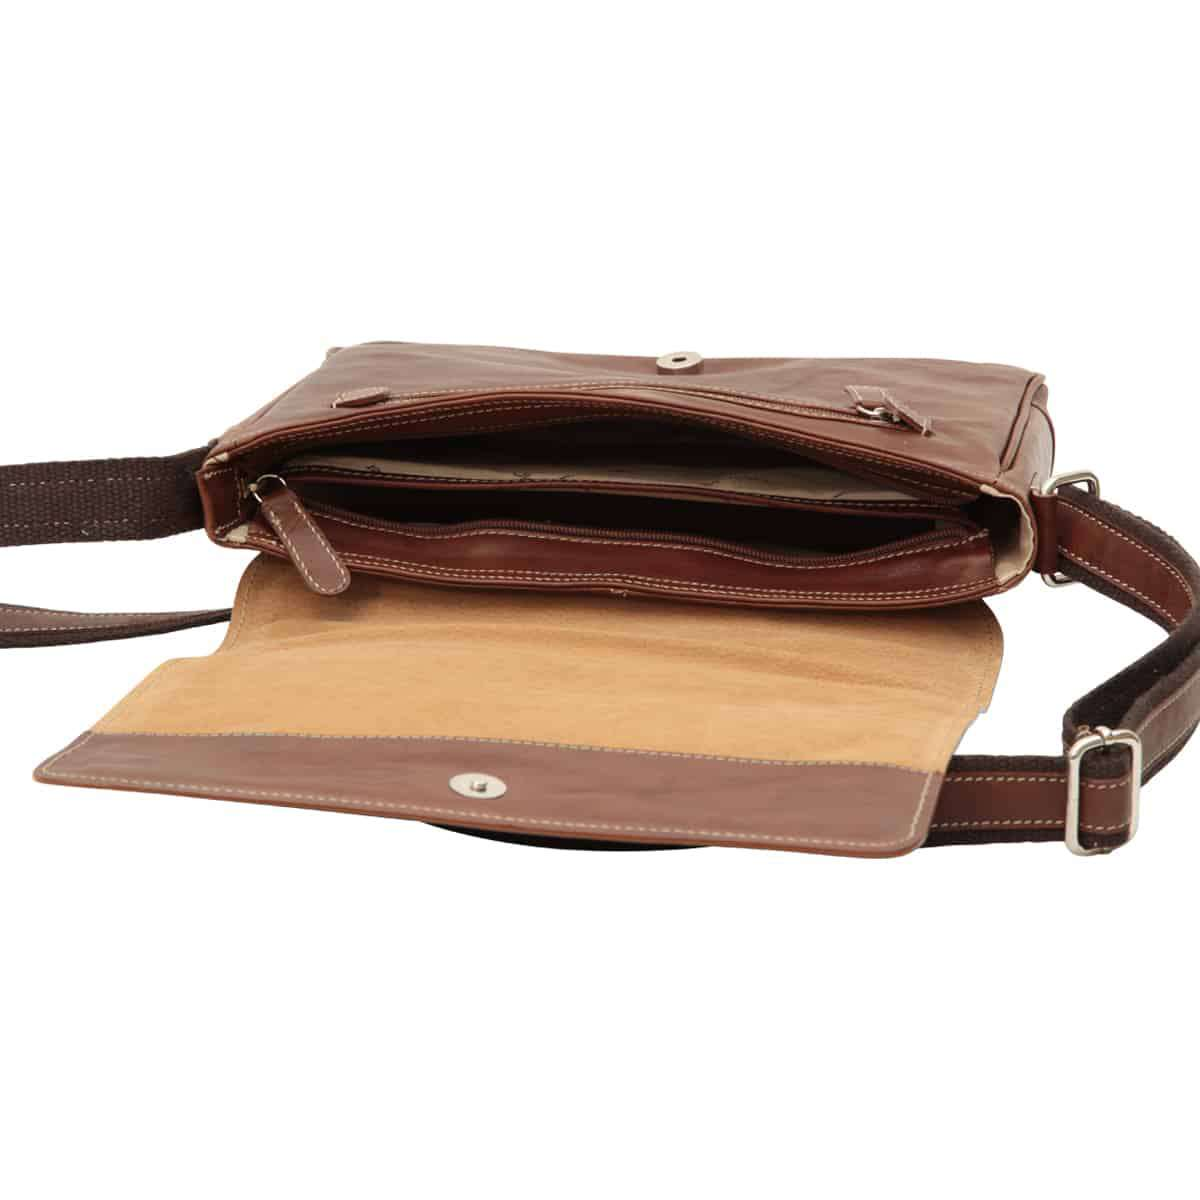 Oiled calfskin leather messenger with frontal zip closure - Chestnut | 410461CA UK | Old Angler Firenze